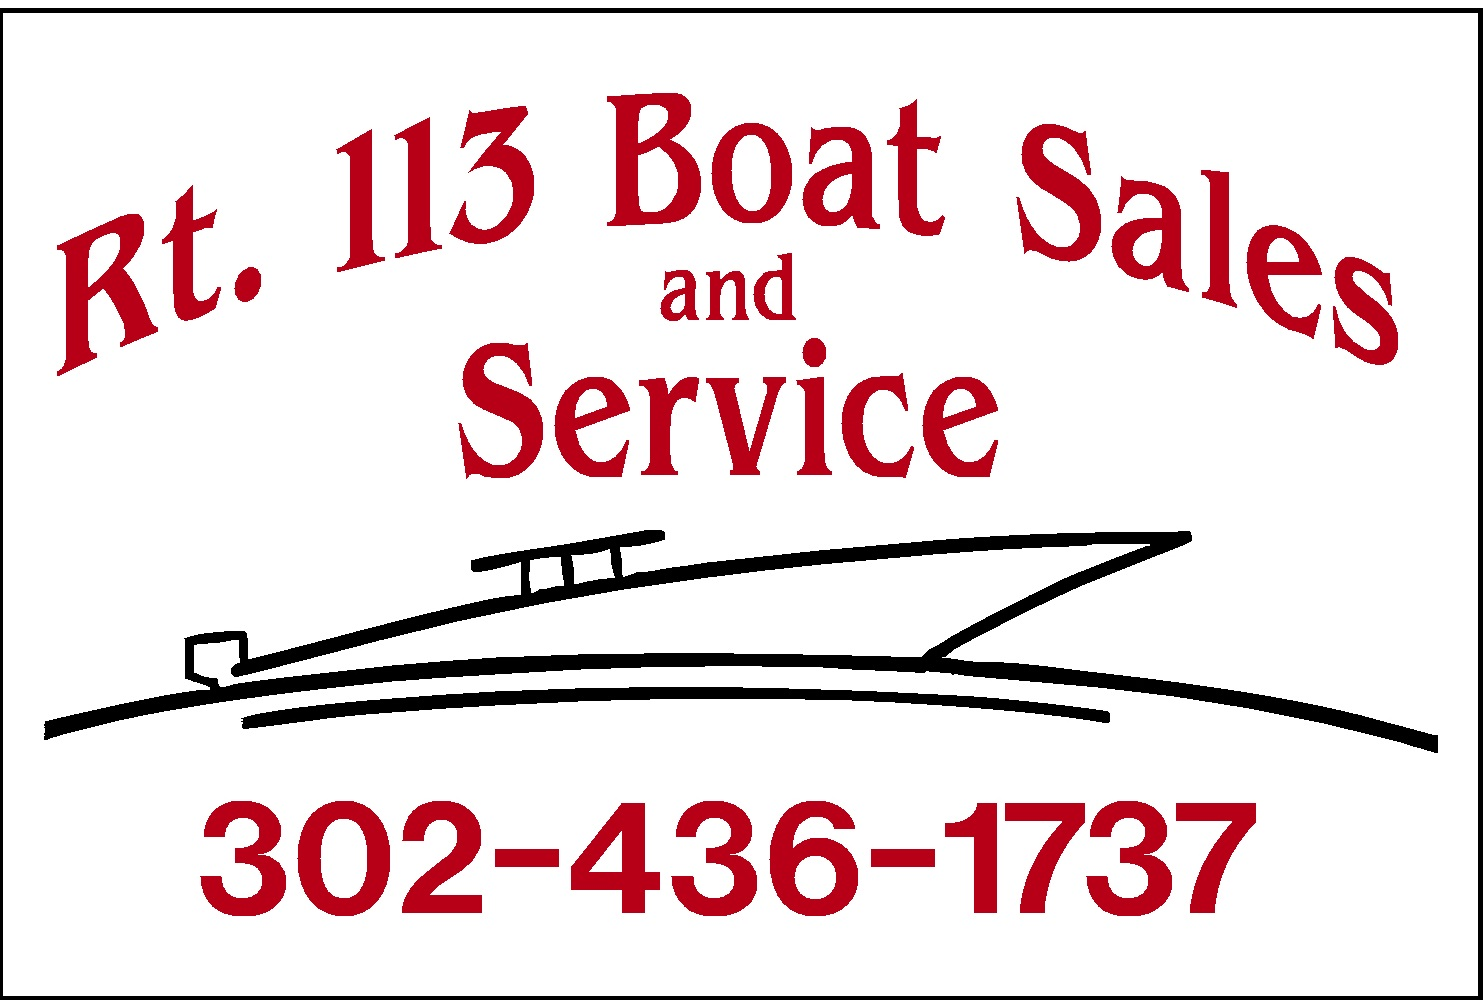 RT 113 Boat Sales logo